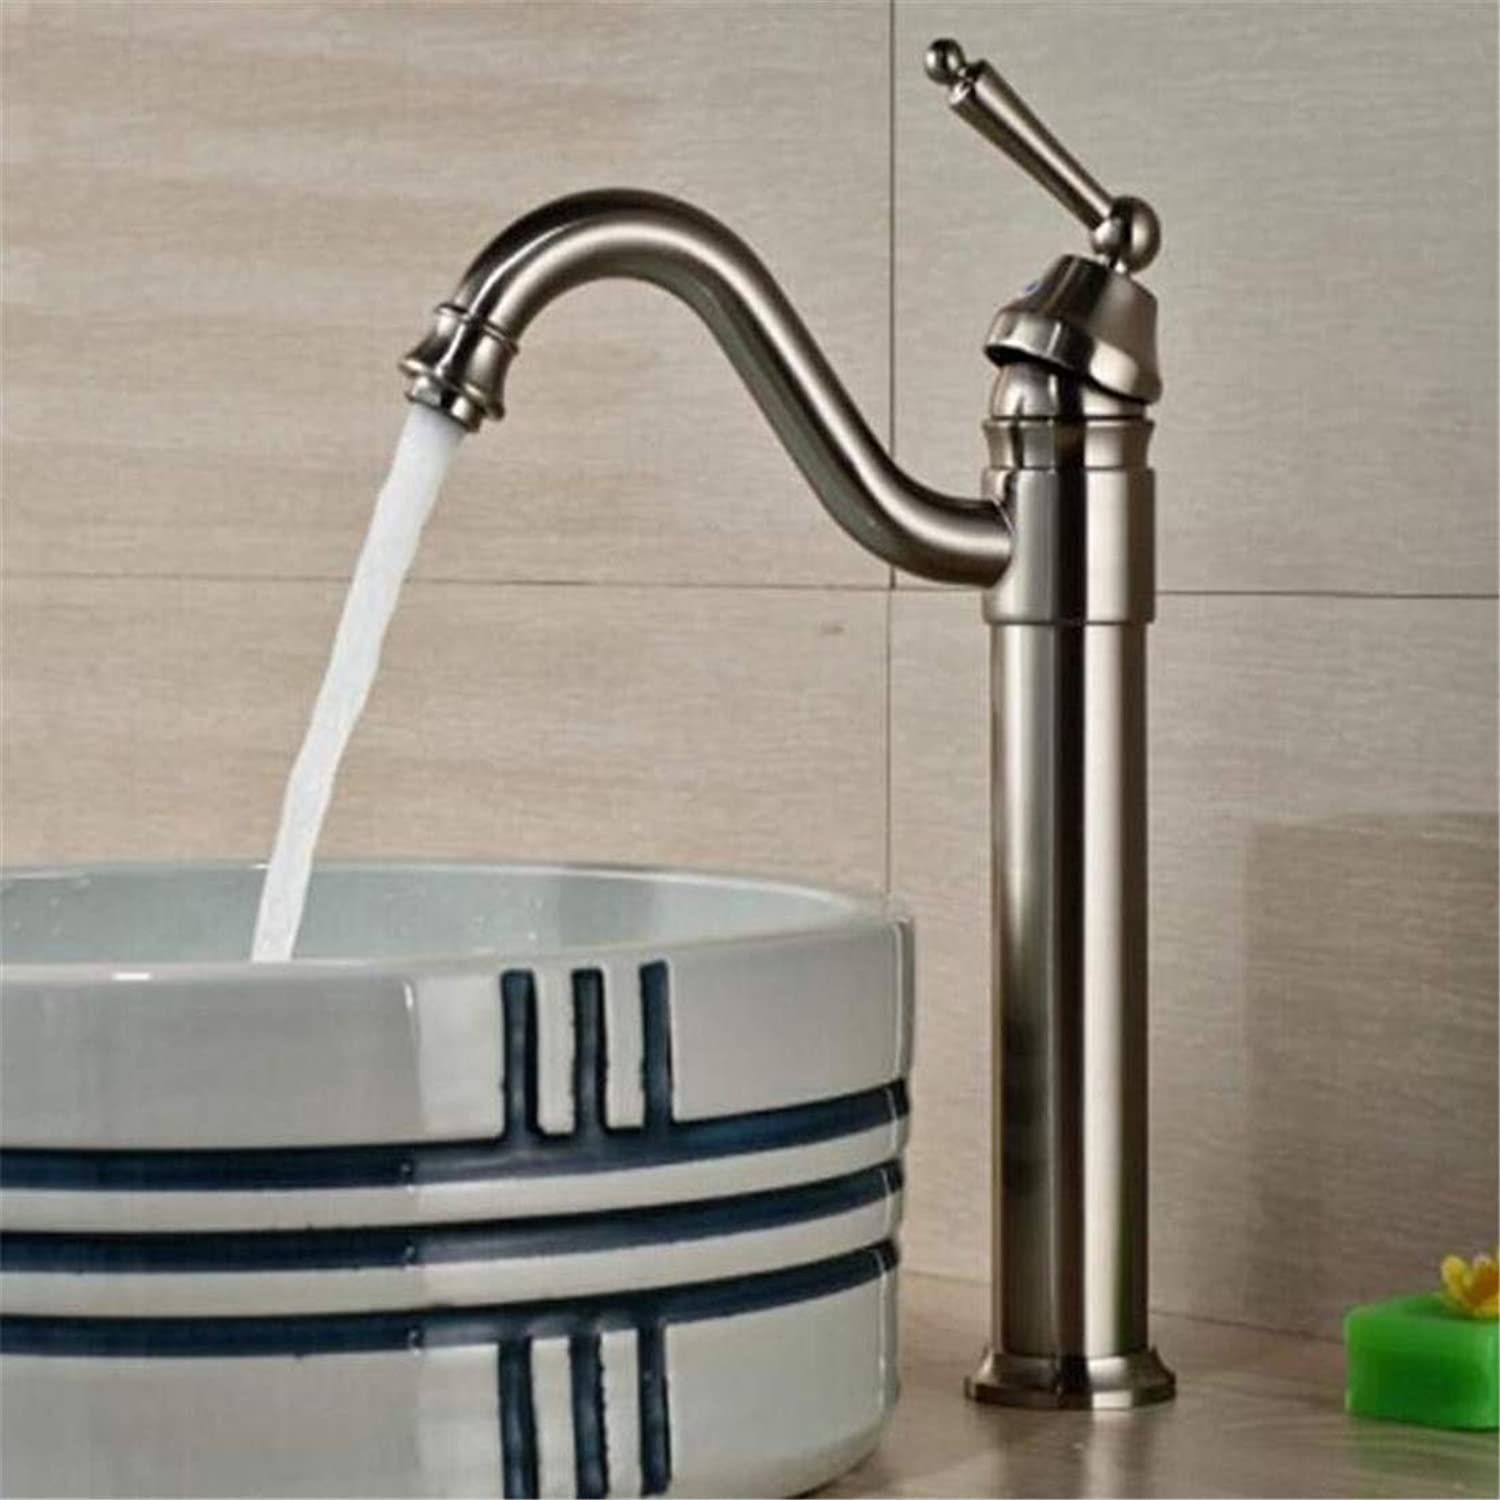 Faucet Modern Plated Mixer Faucet Faucet Washbasin Mixer Finished Deck Mounted Height Spout Bathroom Sink Mixer Tap